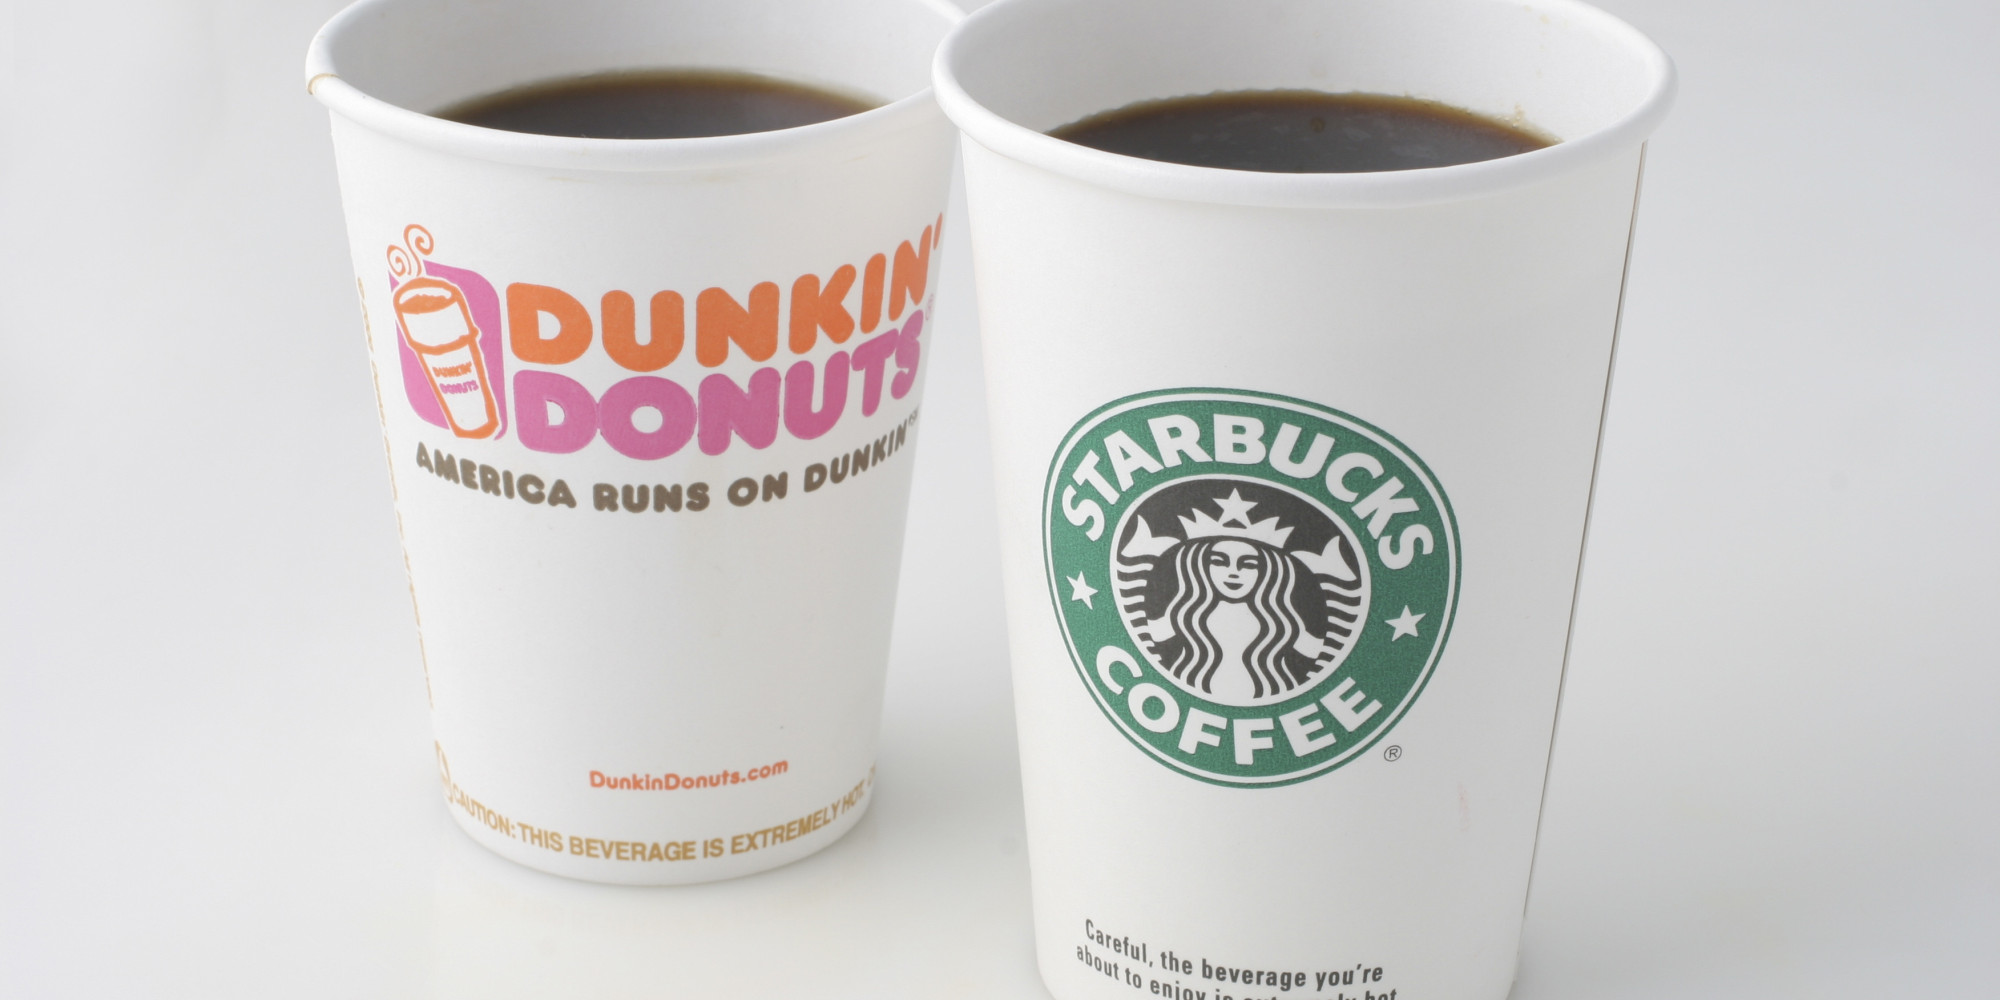 Dunkin' Donuts & Starbucks Seasonal Treats